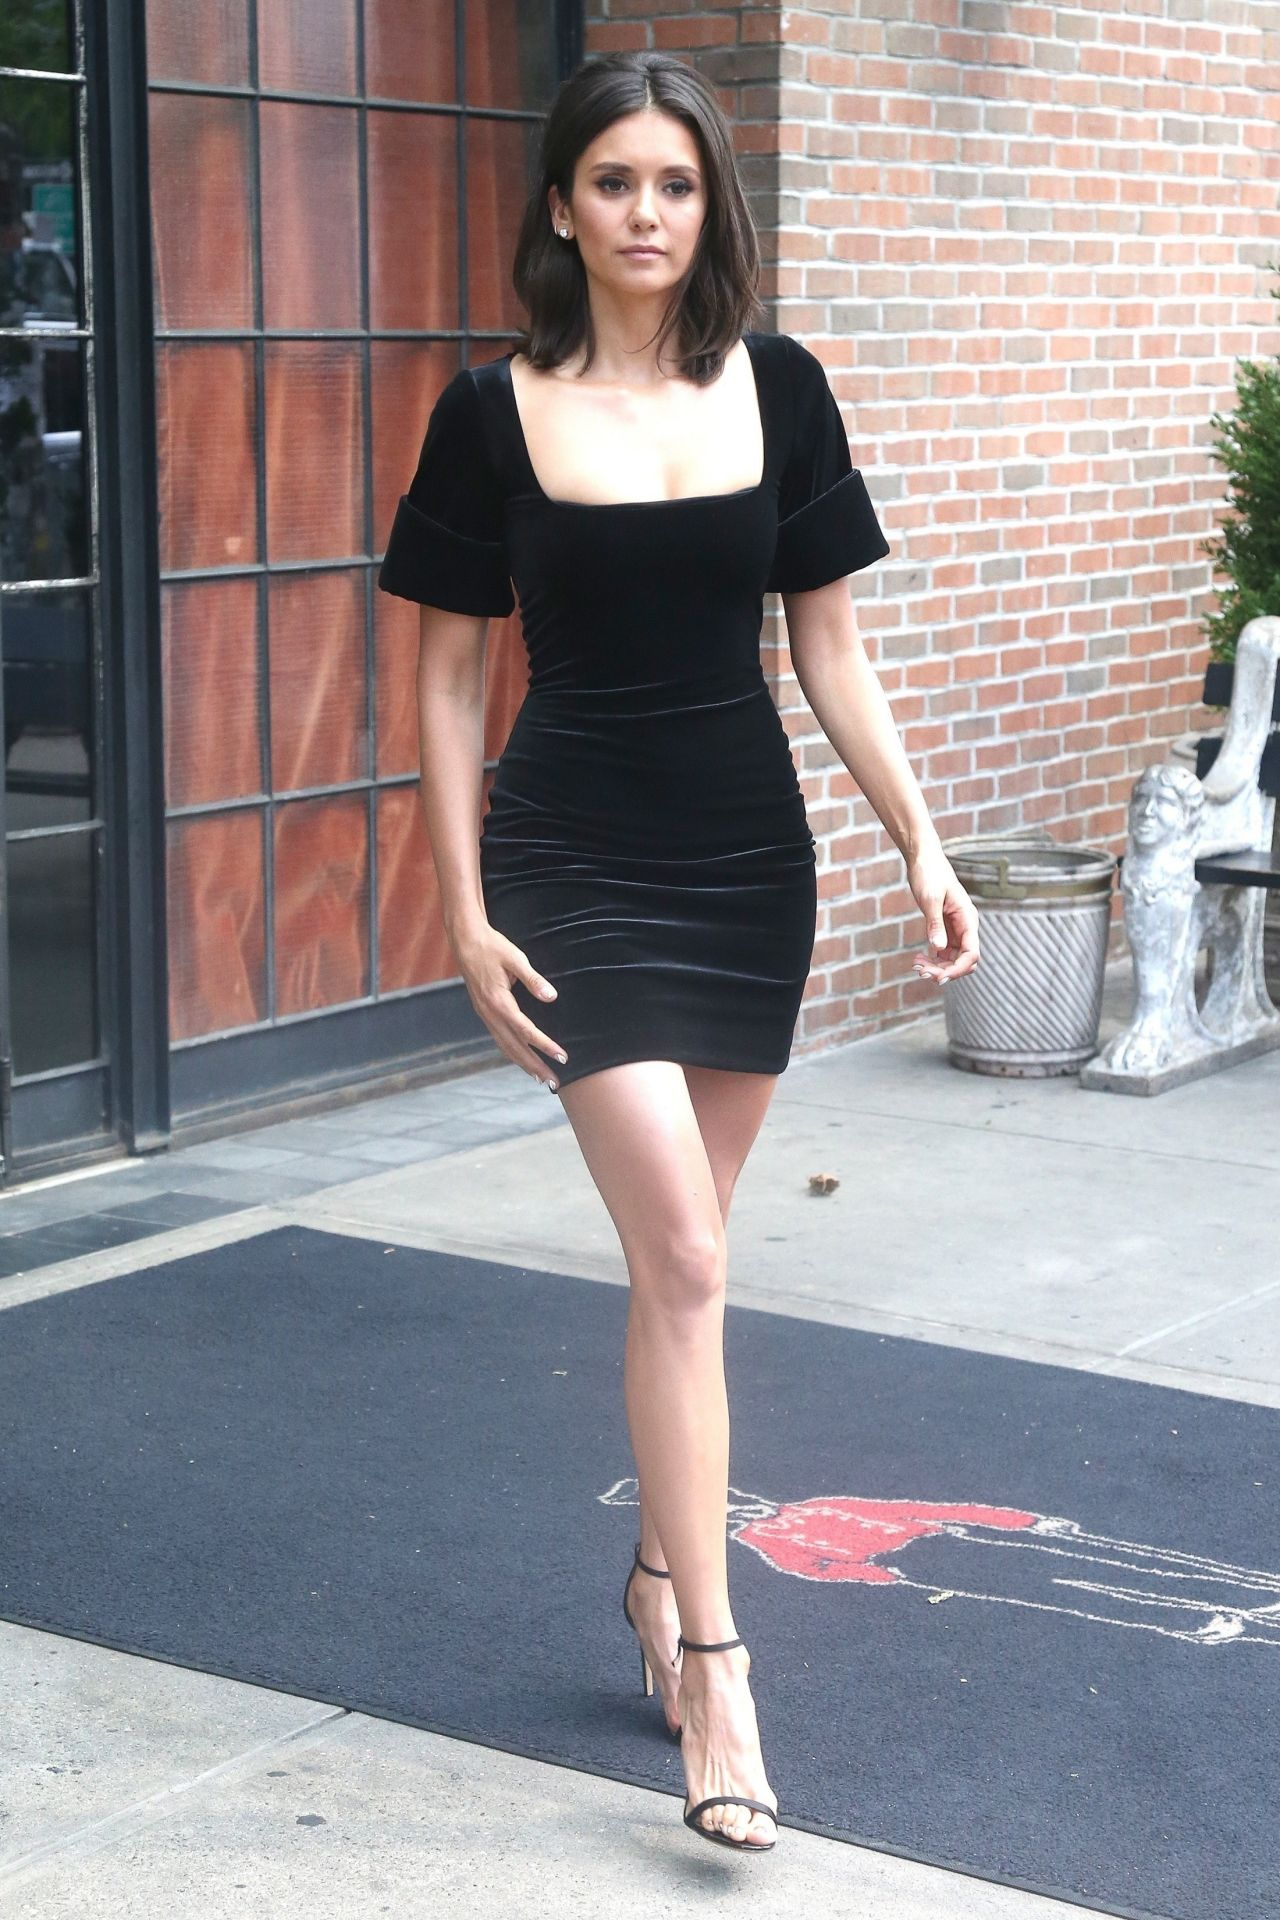 https://celebmafia.com/wp-content/uploads/2018/08/nina-dobrev-in-a-black-dress-leaving-her-hotel-in-nyc-08-08-2018-9.jpg